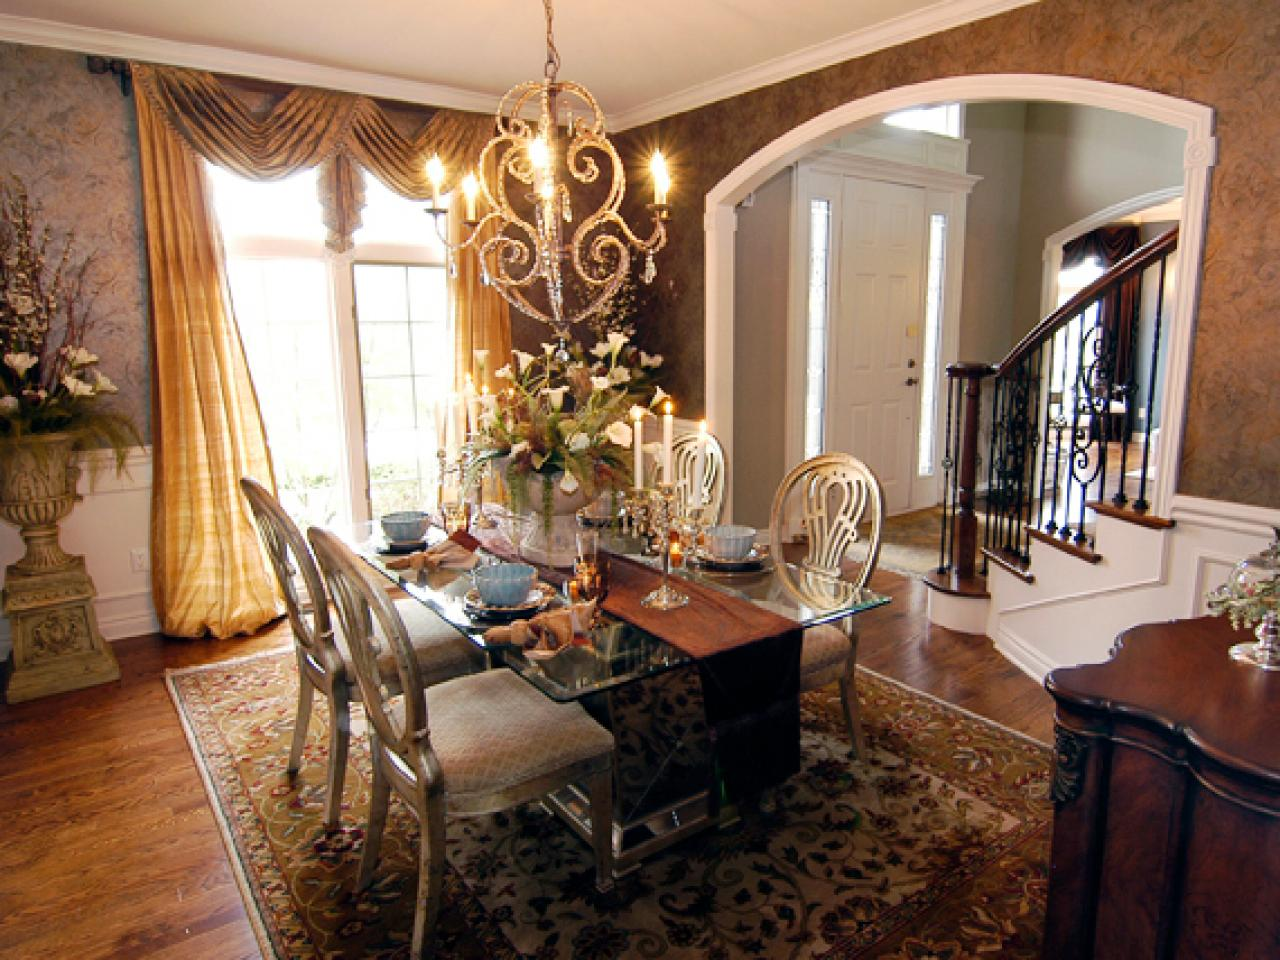 Budget friendly dining room updates from expert designers for Design my dining room